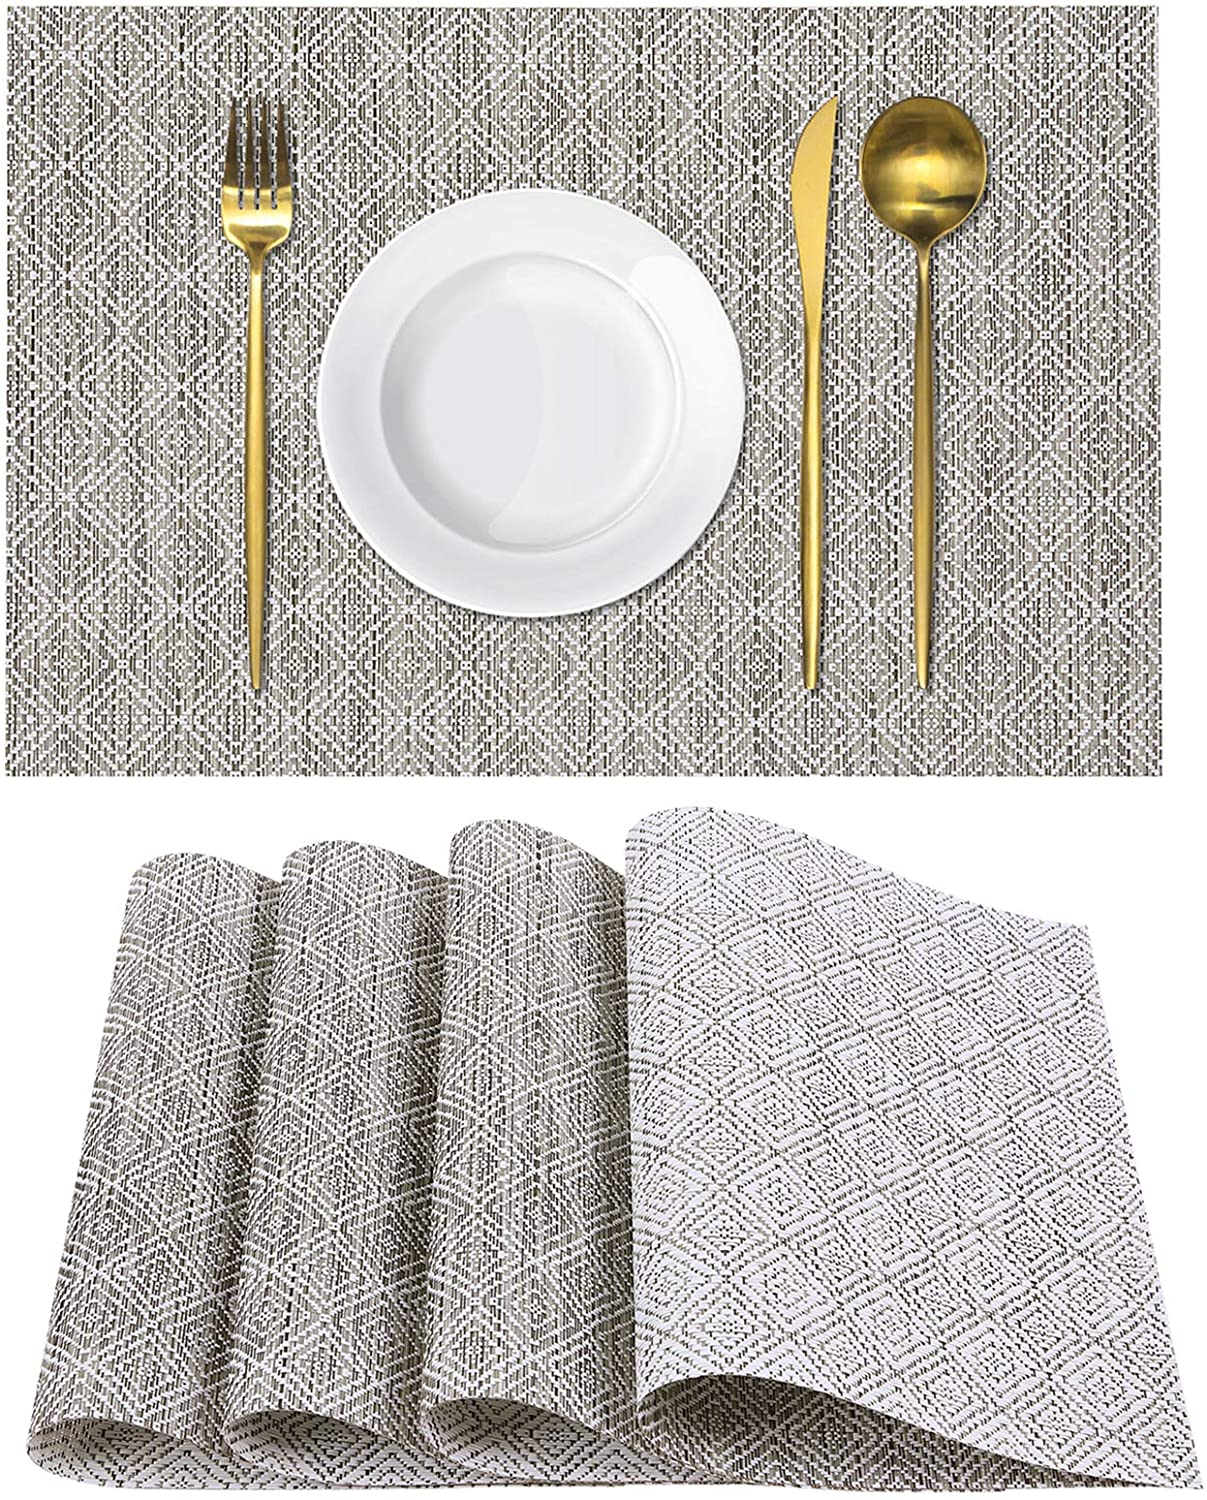 Homaxy Placemats for Dining Table Set of 4 - Washable Vinyl Woven Insulation Heat Resistant Kitchen Table Mats, 18 x 12 Inches, Cool Grey